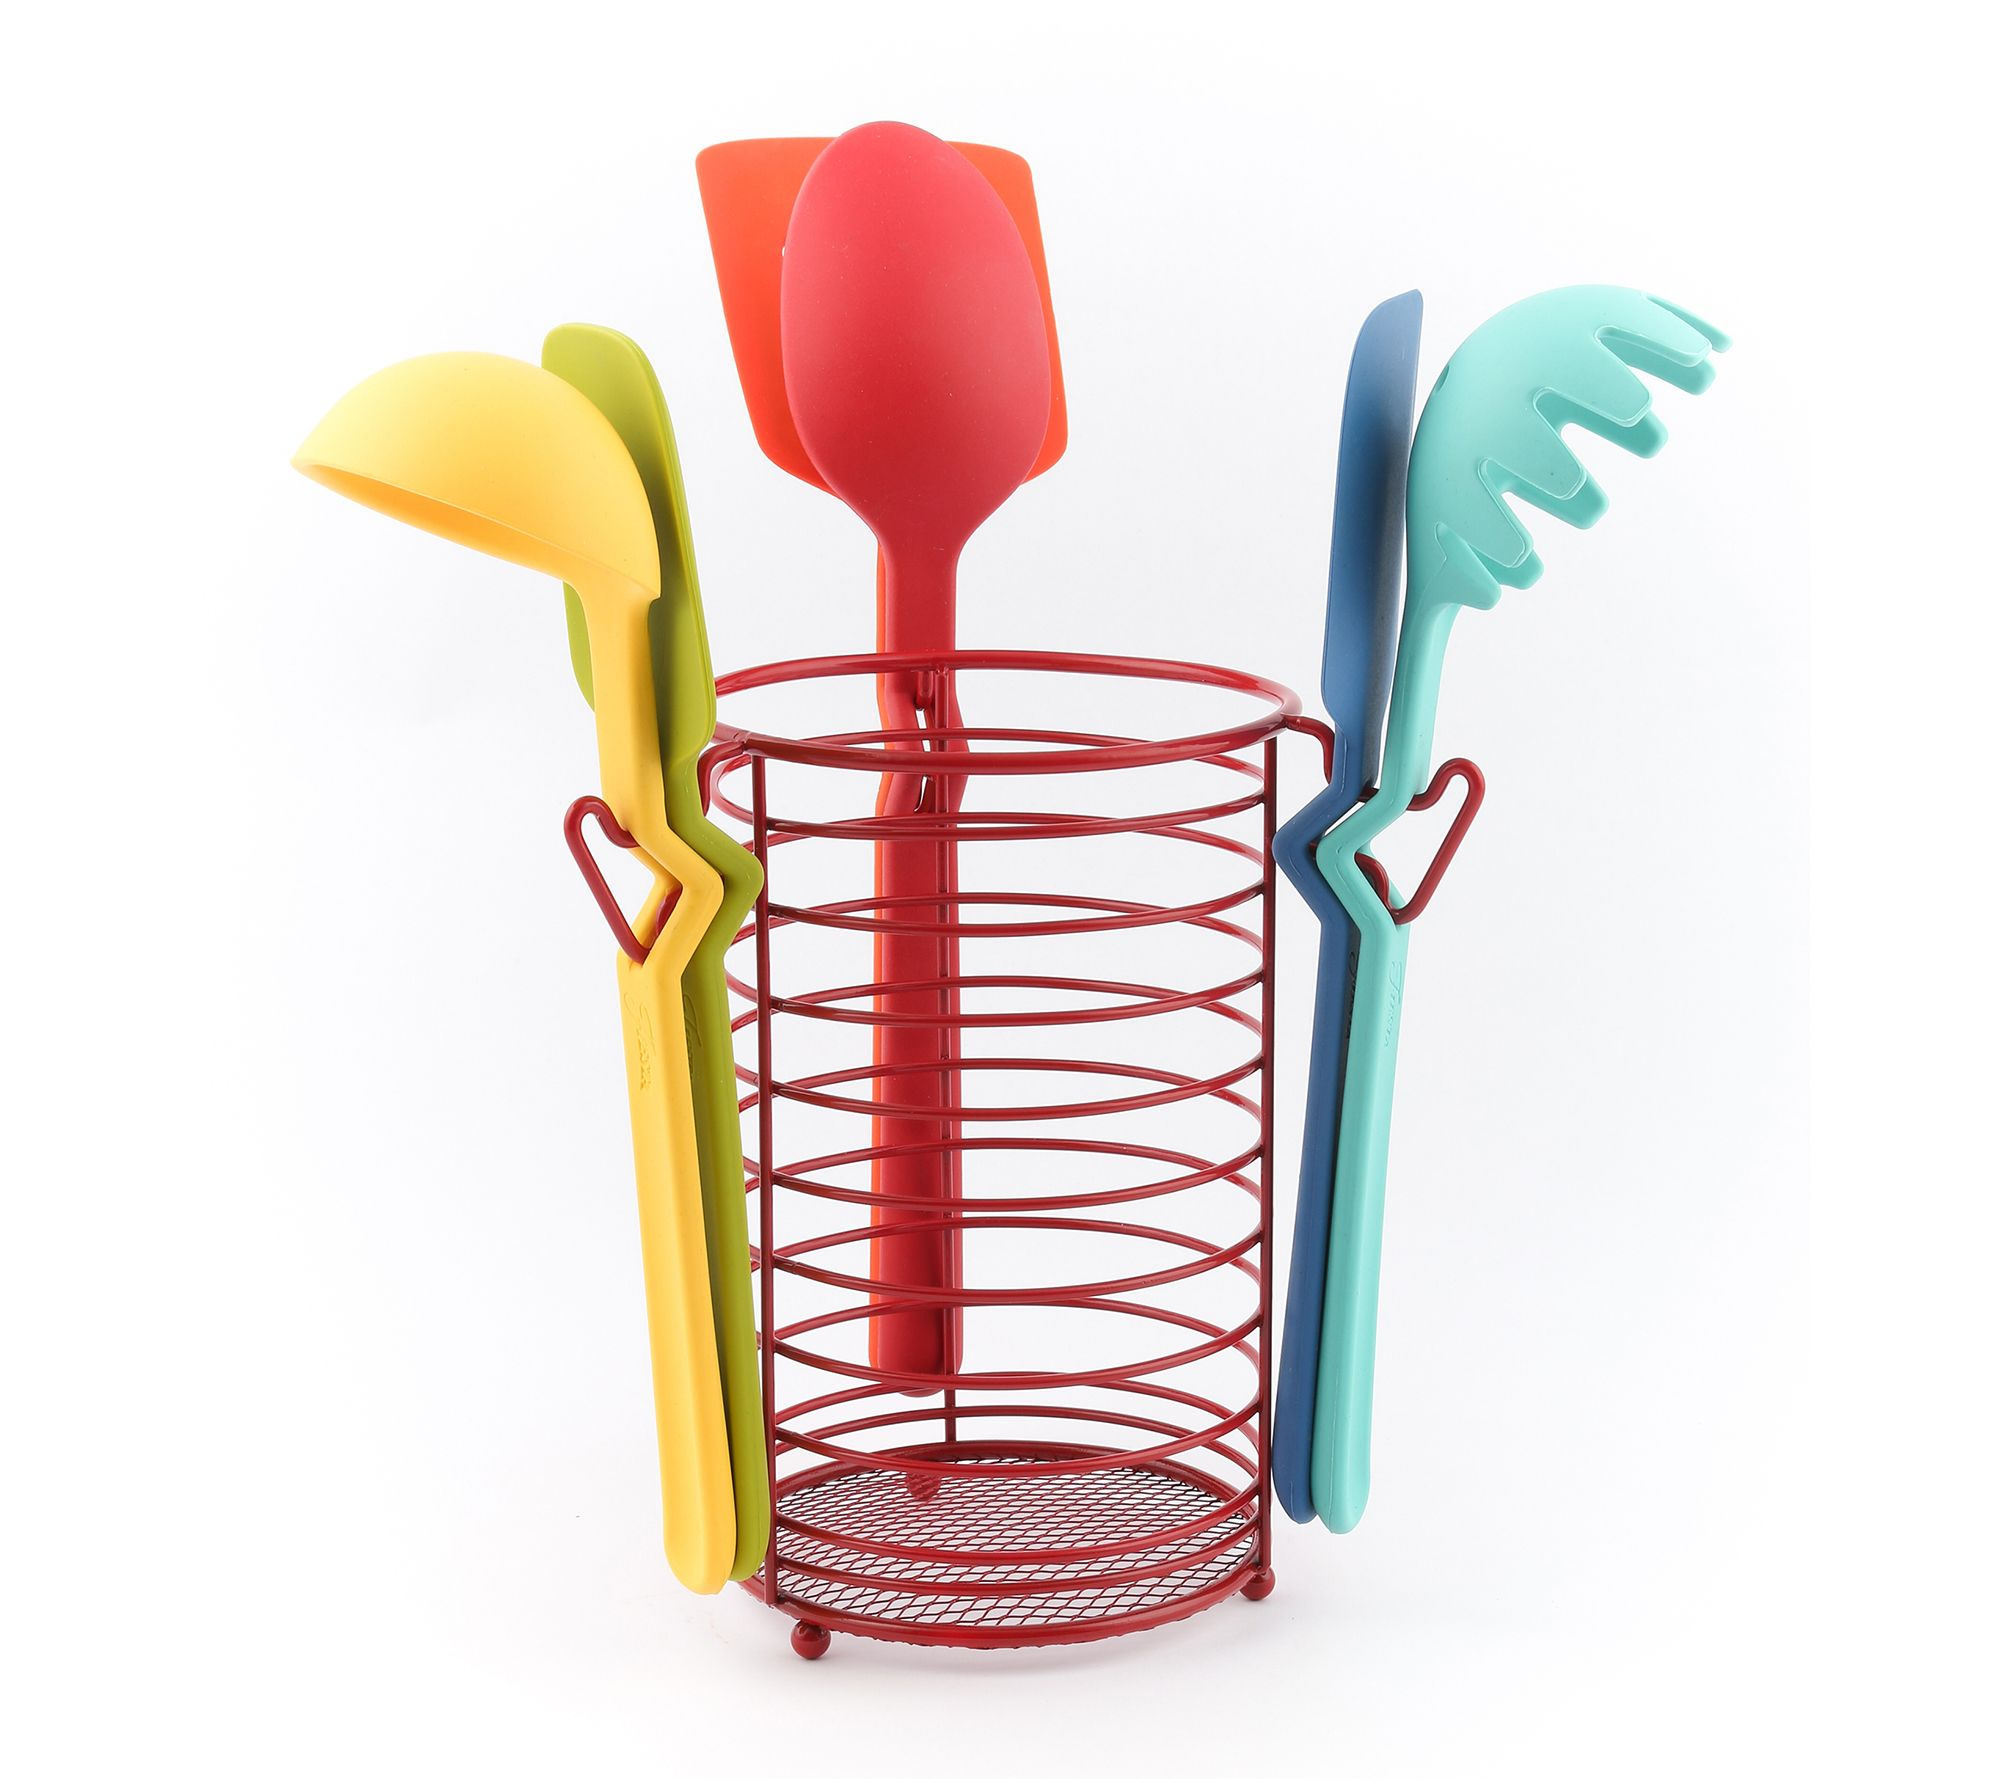 Fiesta 7 Piece Silicone Utensil Set With Wire Caddy Qvc Com